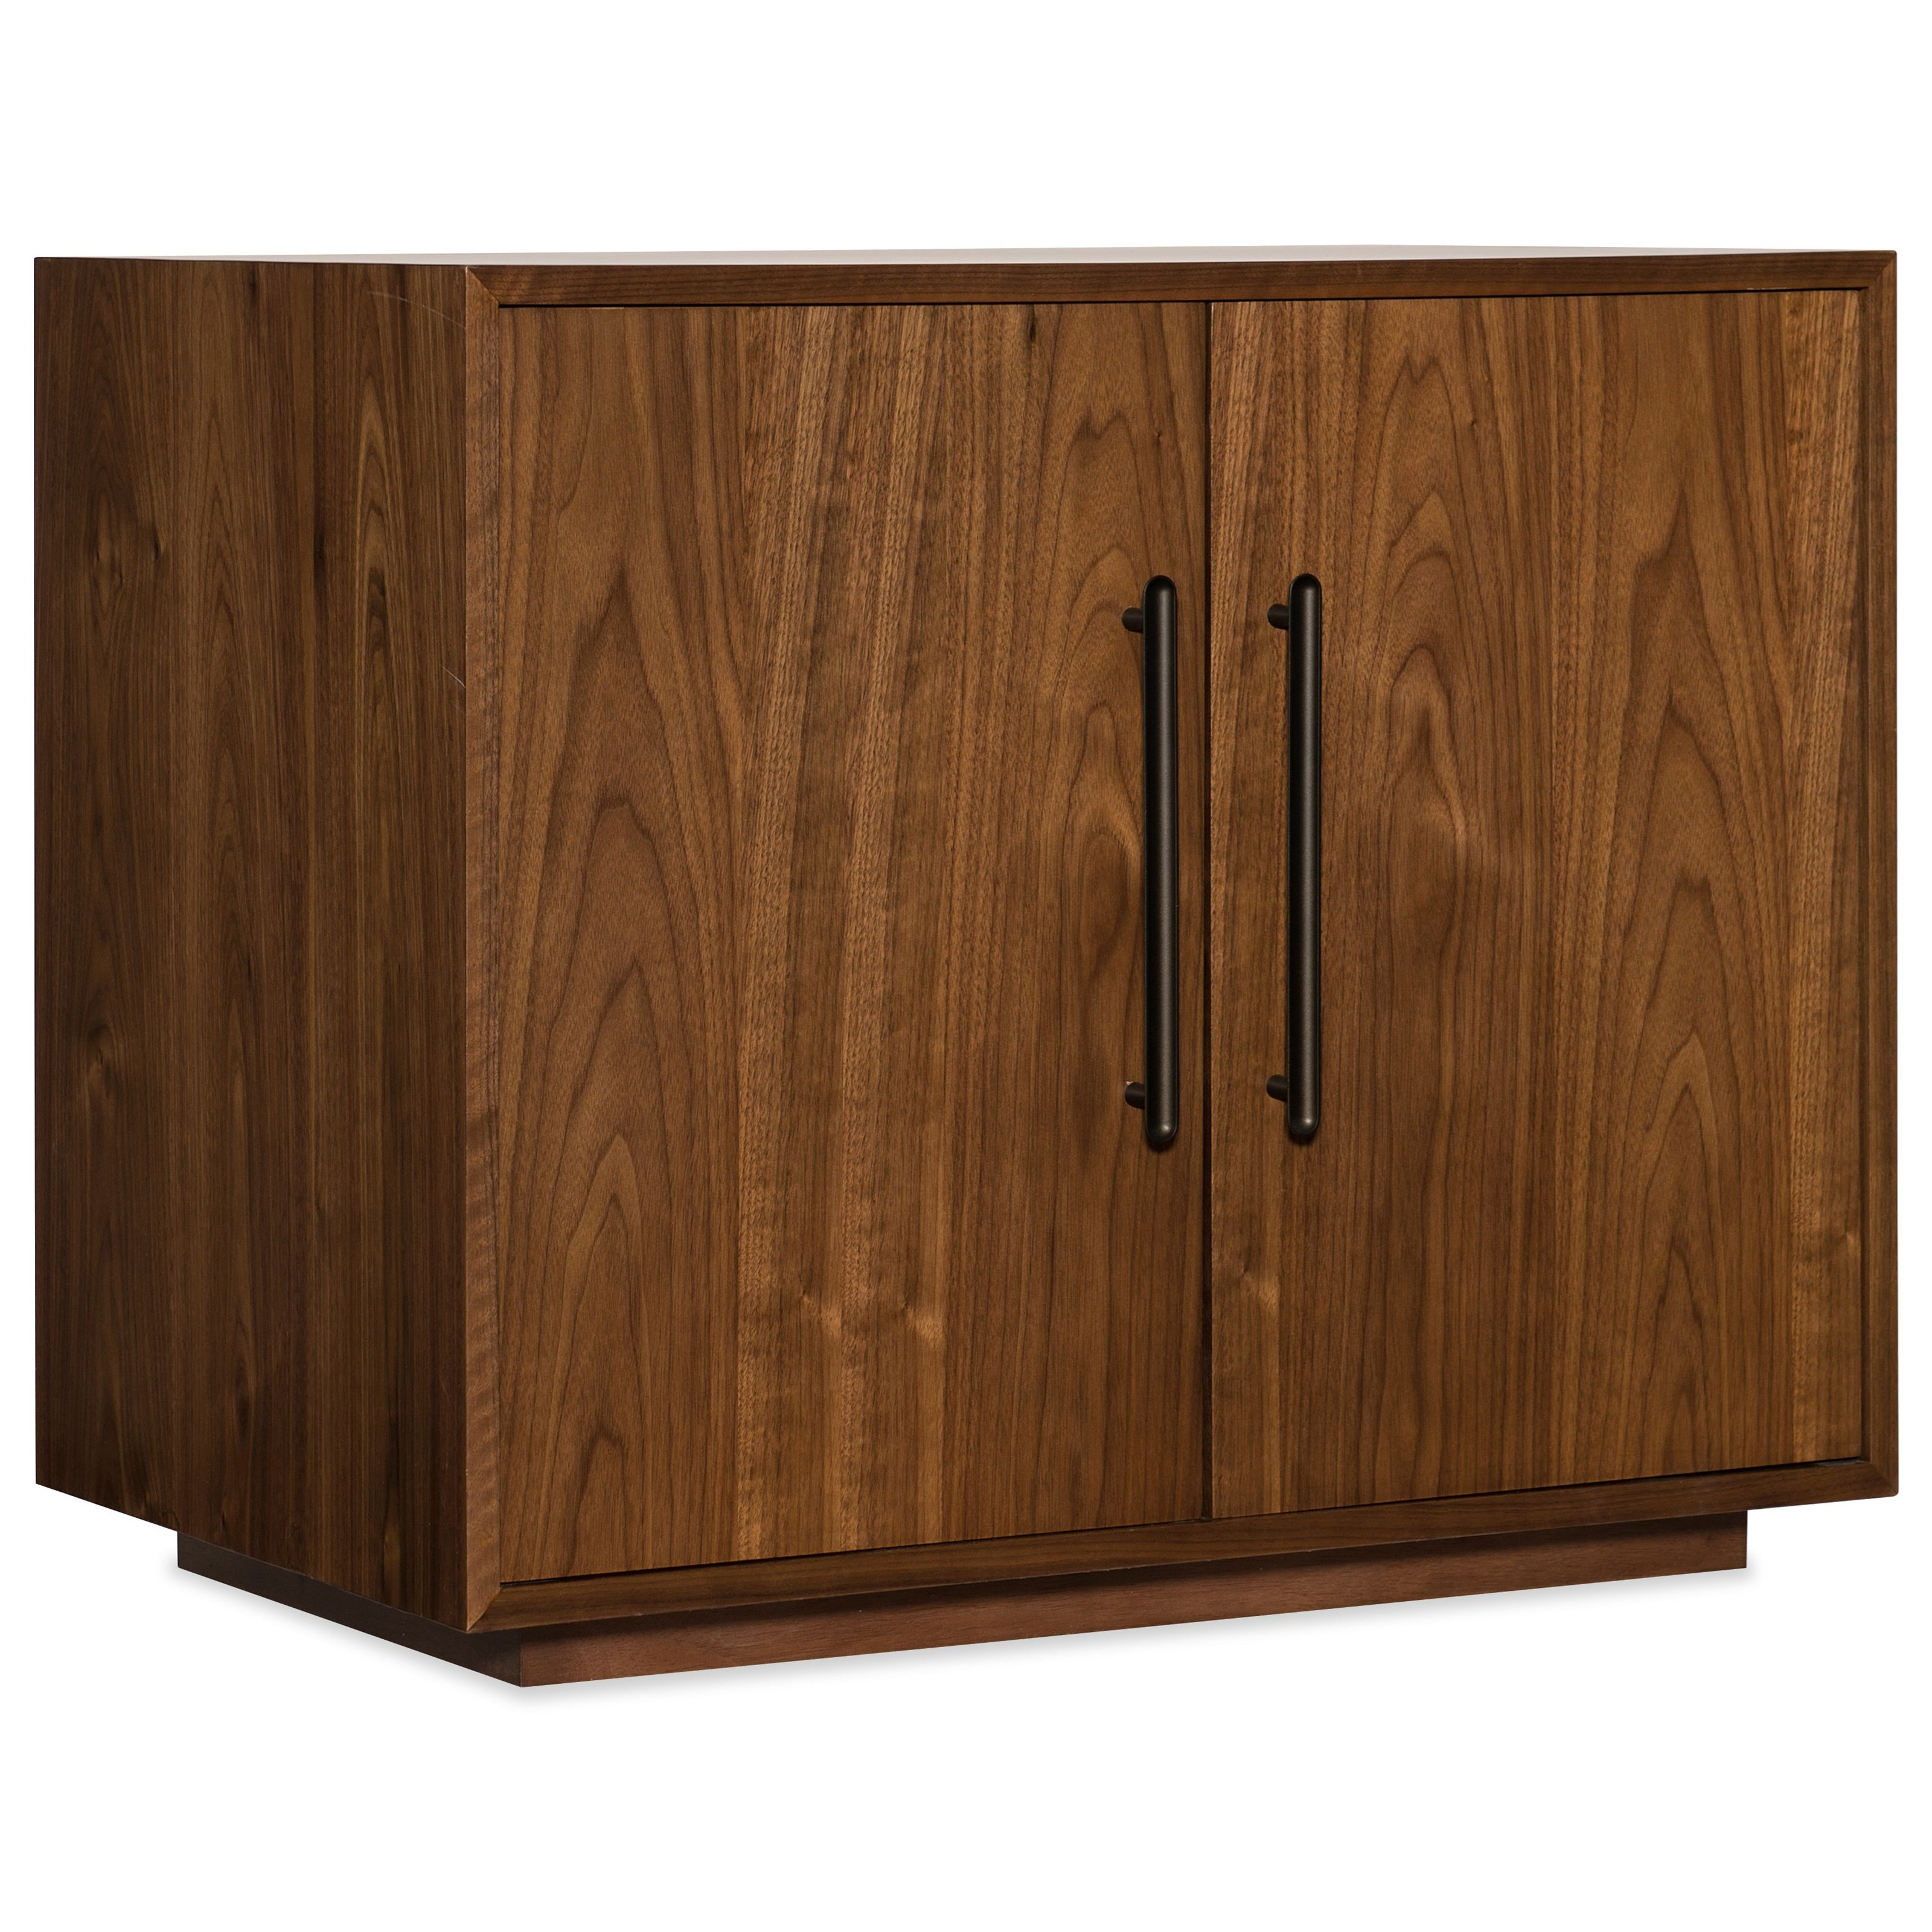 Elon Two-Door Cabinet by Hooker Furniture at Miller Waldrop Furniture and Decor